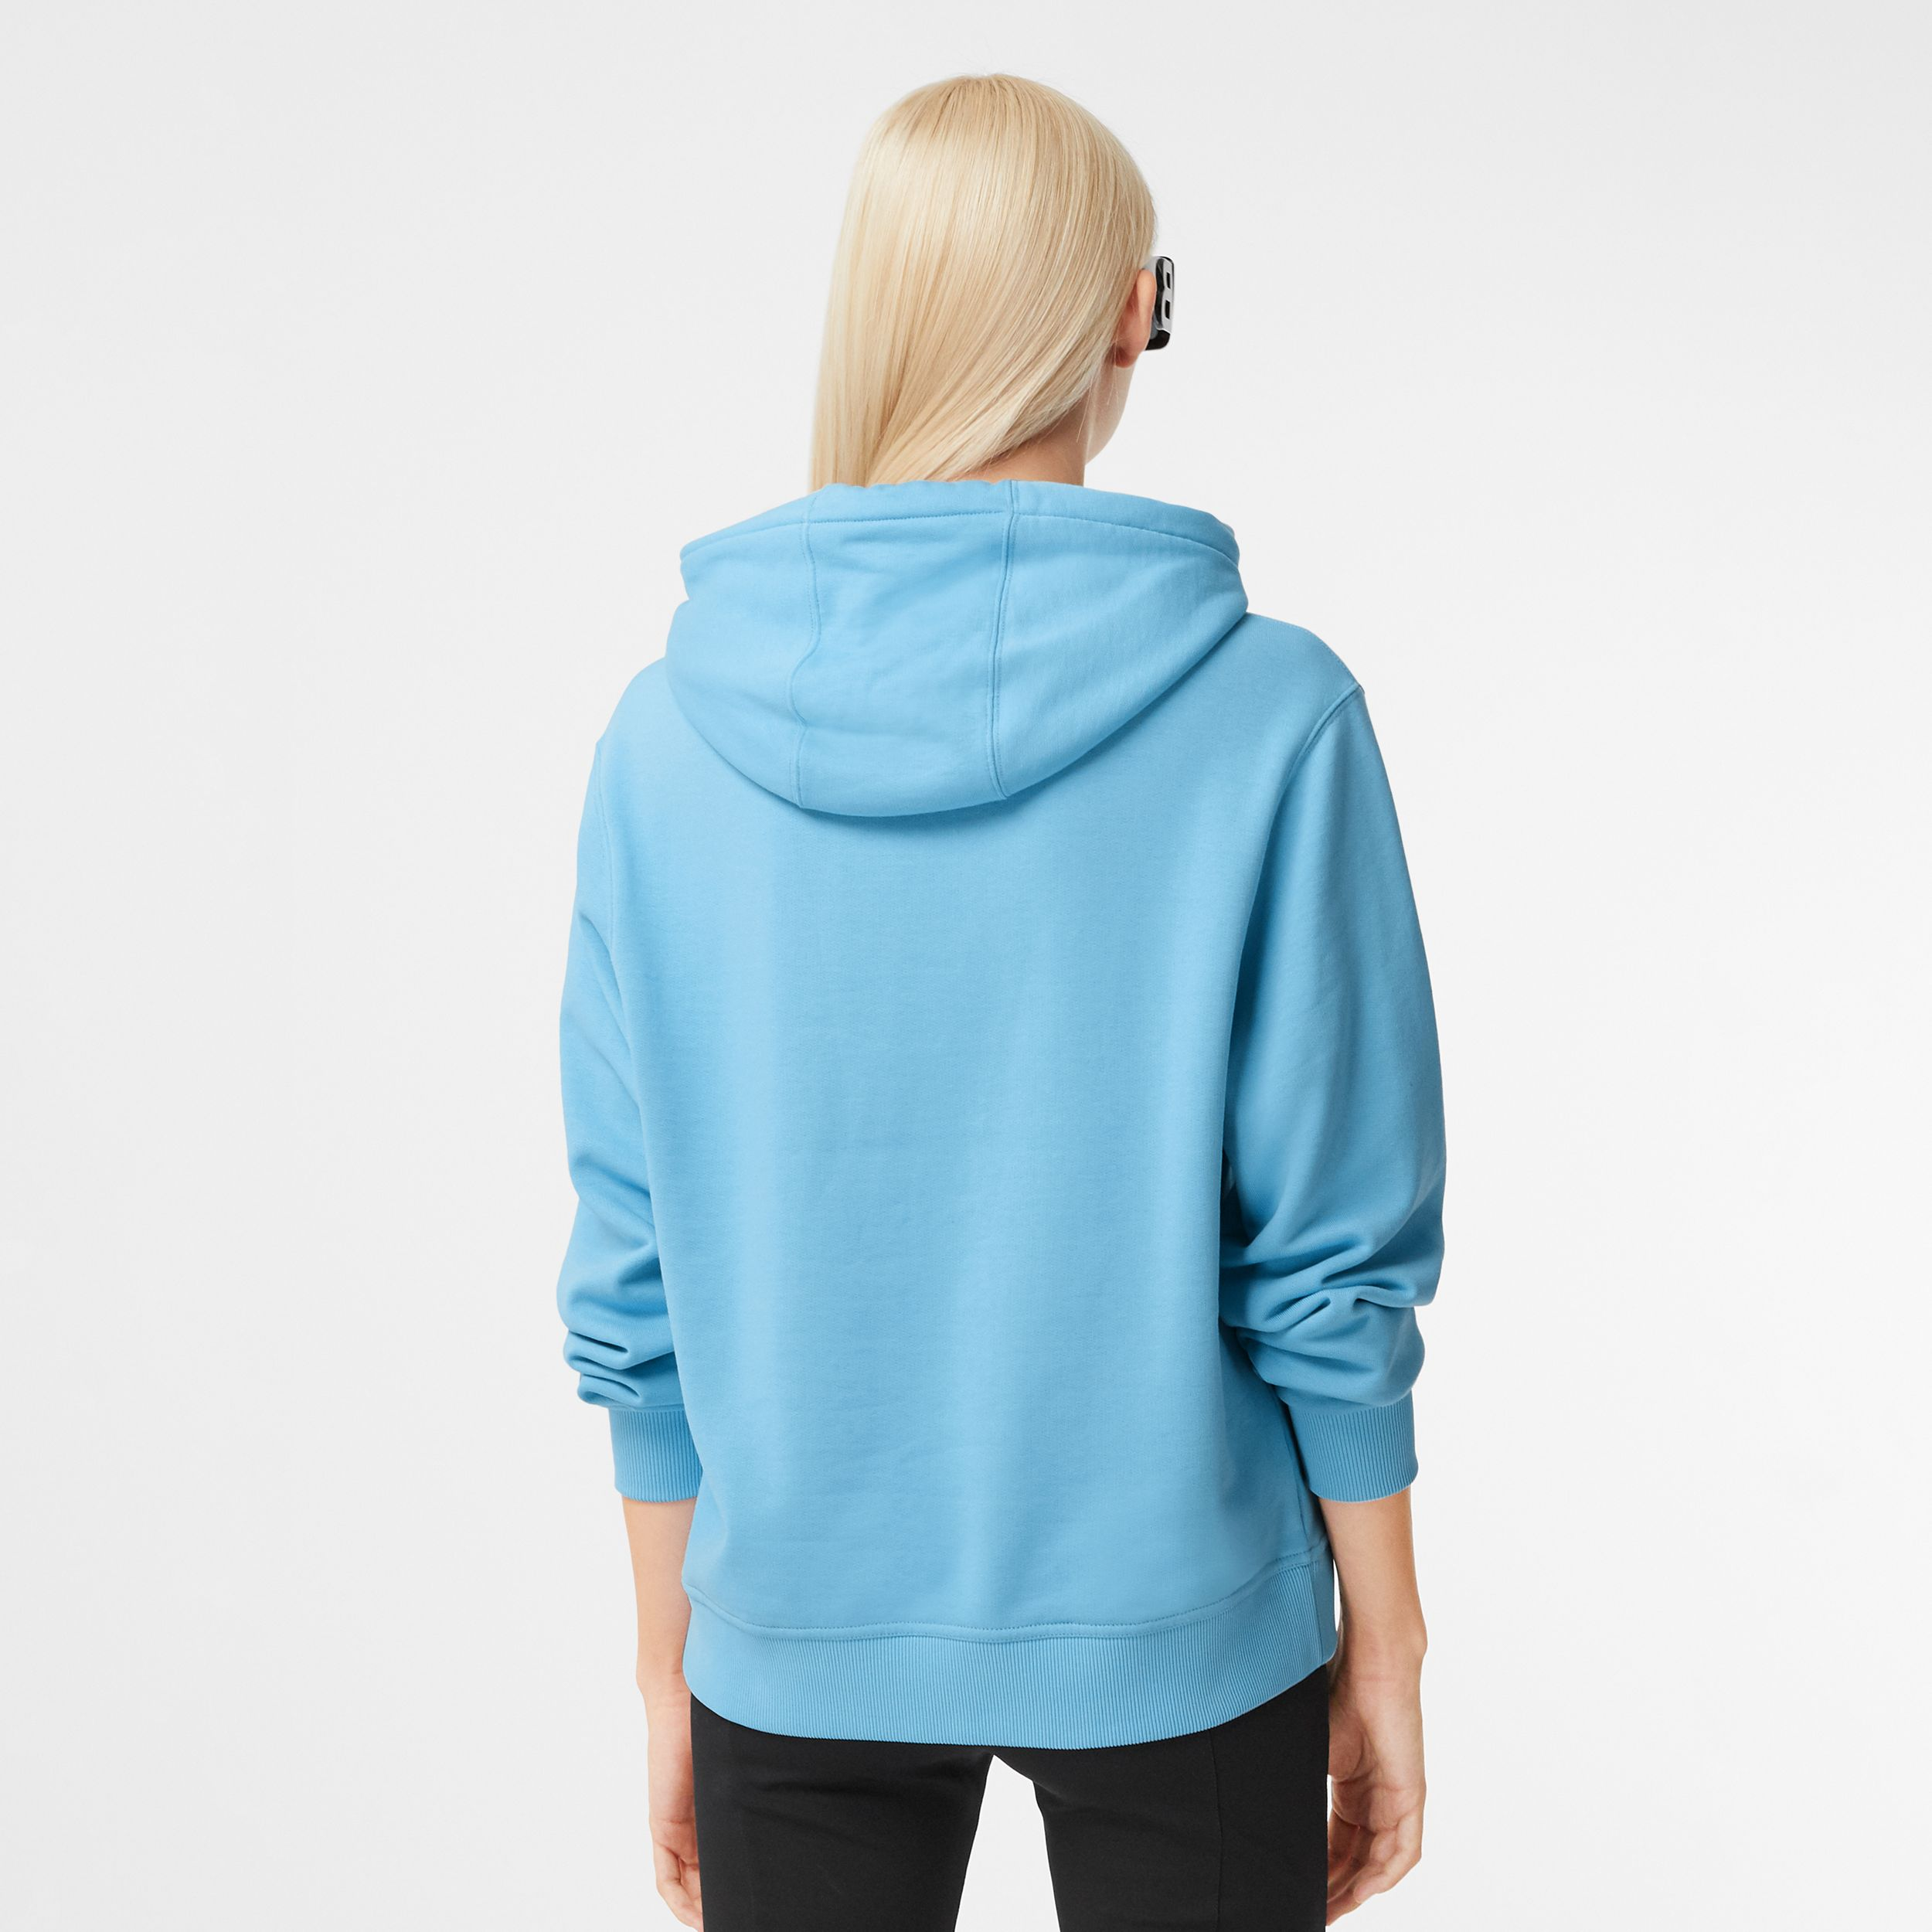 Logo Graphic Cotton Oversized Hoodie in Blue Topaz - Women | Burberry - 3